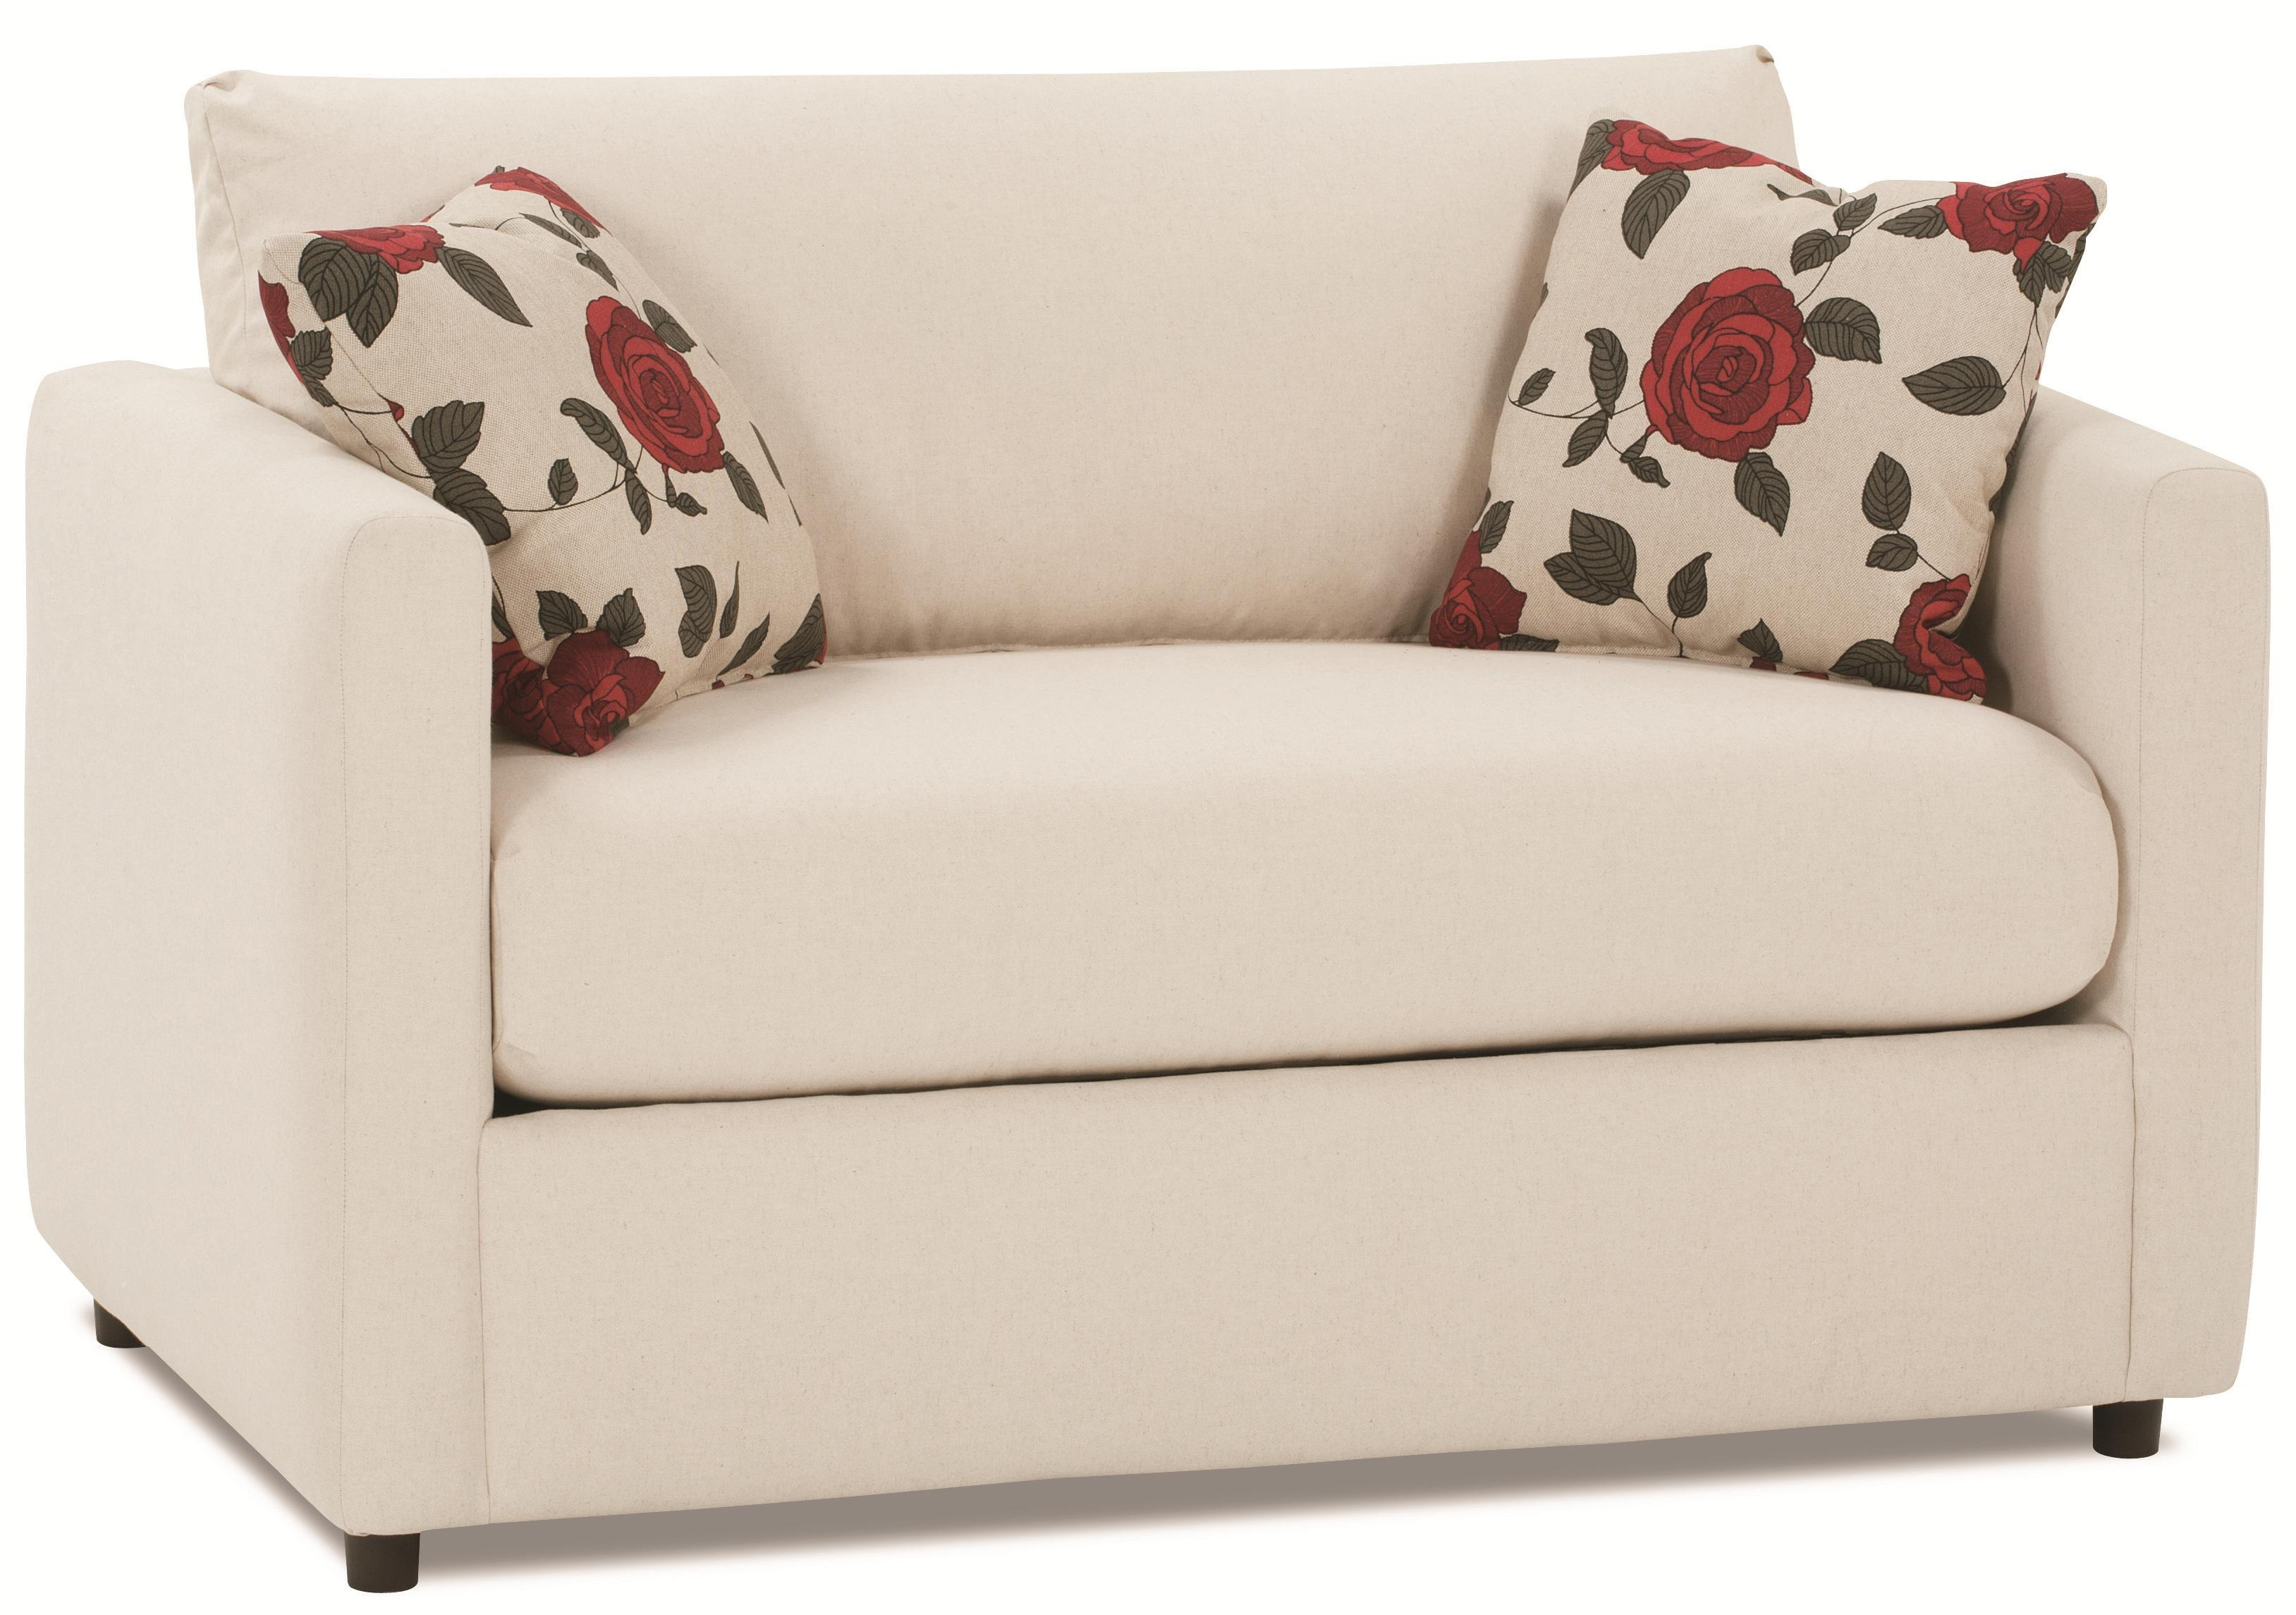 Sofas Center : Shocking Twin Sleeper Sofa Chair Picture Inside Twin Sofa Chairs (Image 11 of 20)